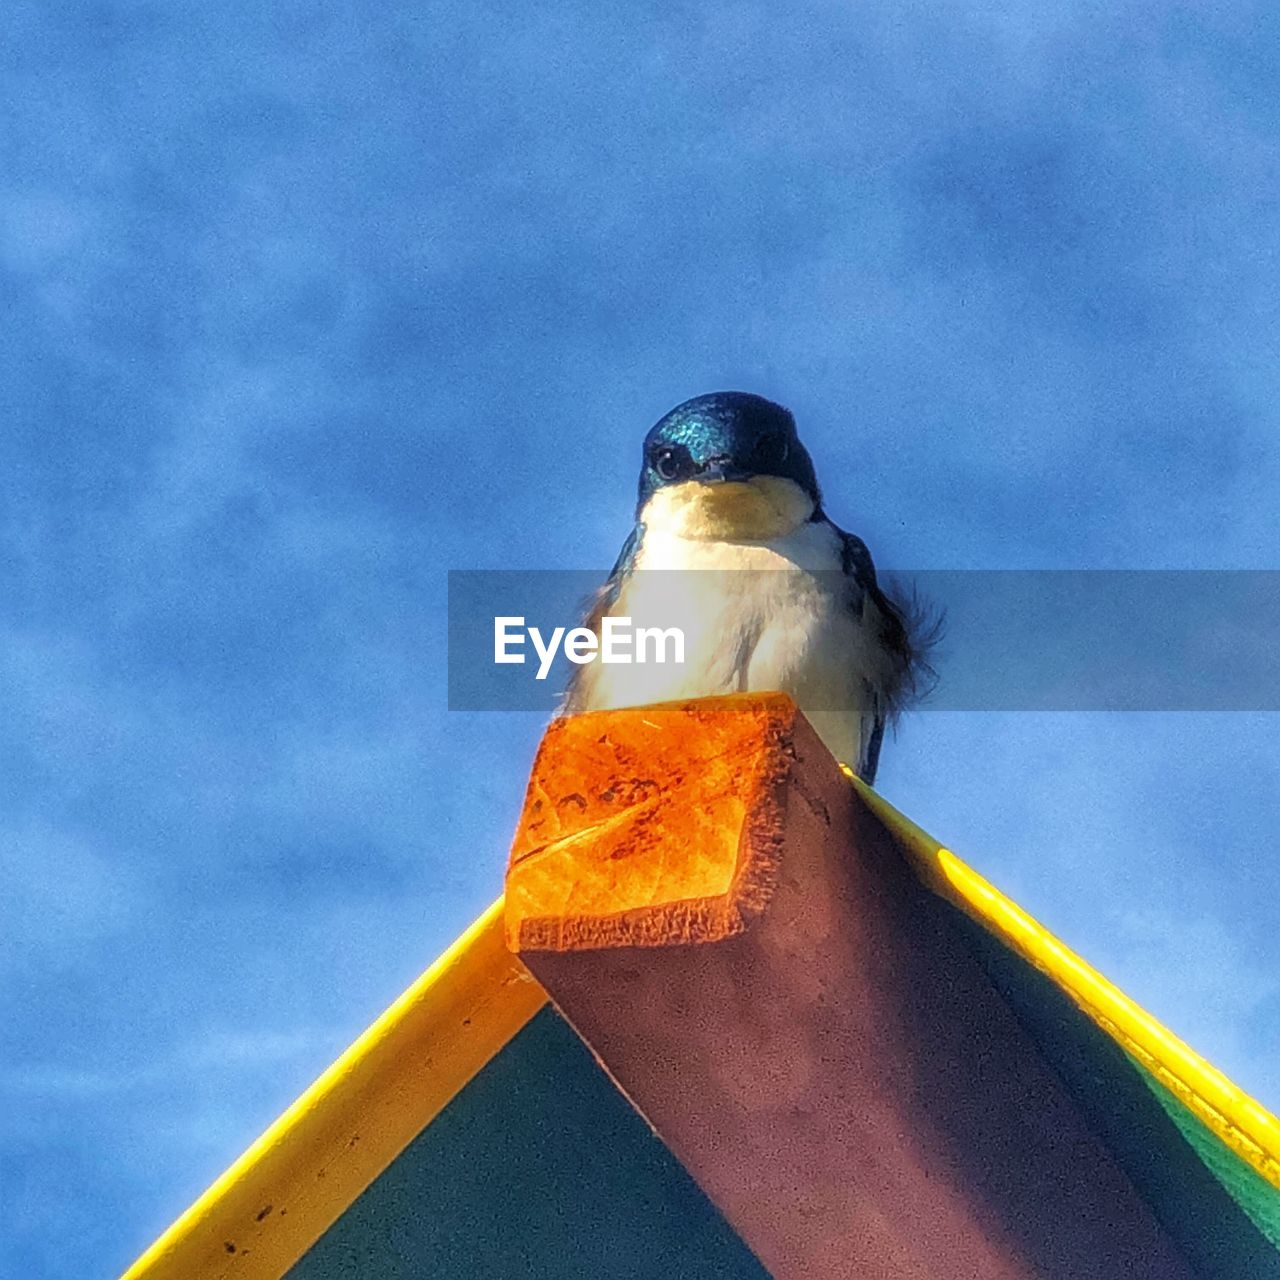 low angle view, sky, one animal, vertebrate, animal, animals in the wild, animal themes, bird, animal wildlife, no people, day, nature, cloud - sky, outdoors, perching, metal, seagull, yellow, blue, close-up